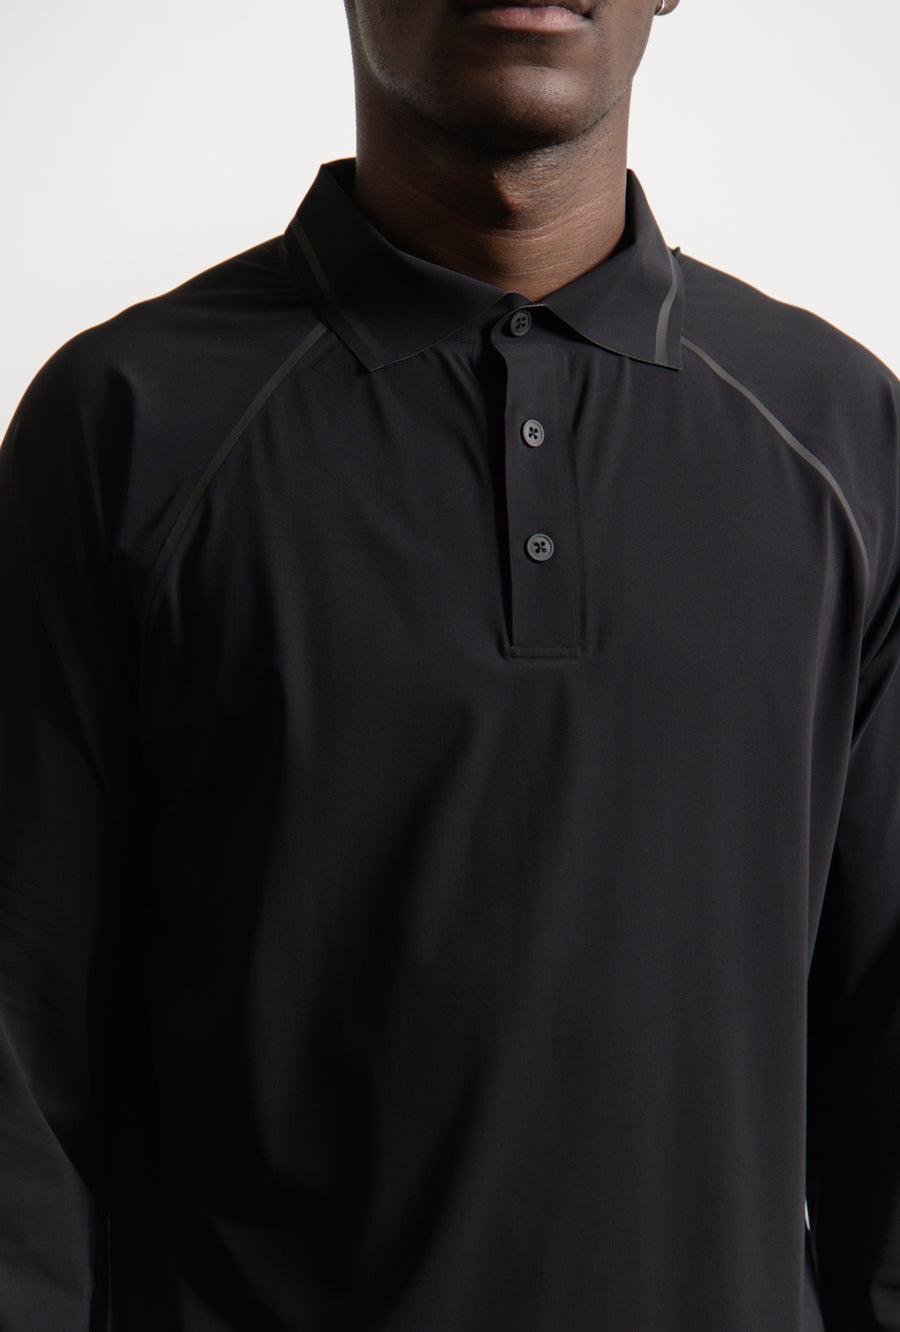 Ultrasound Labourer Polo Shirt Black